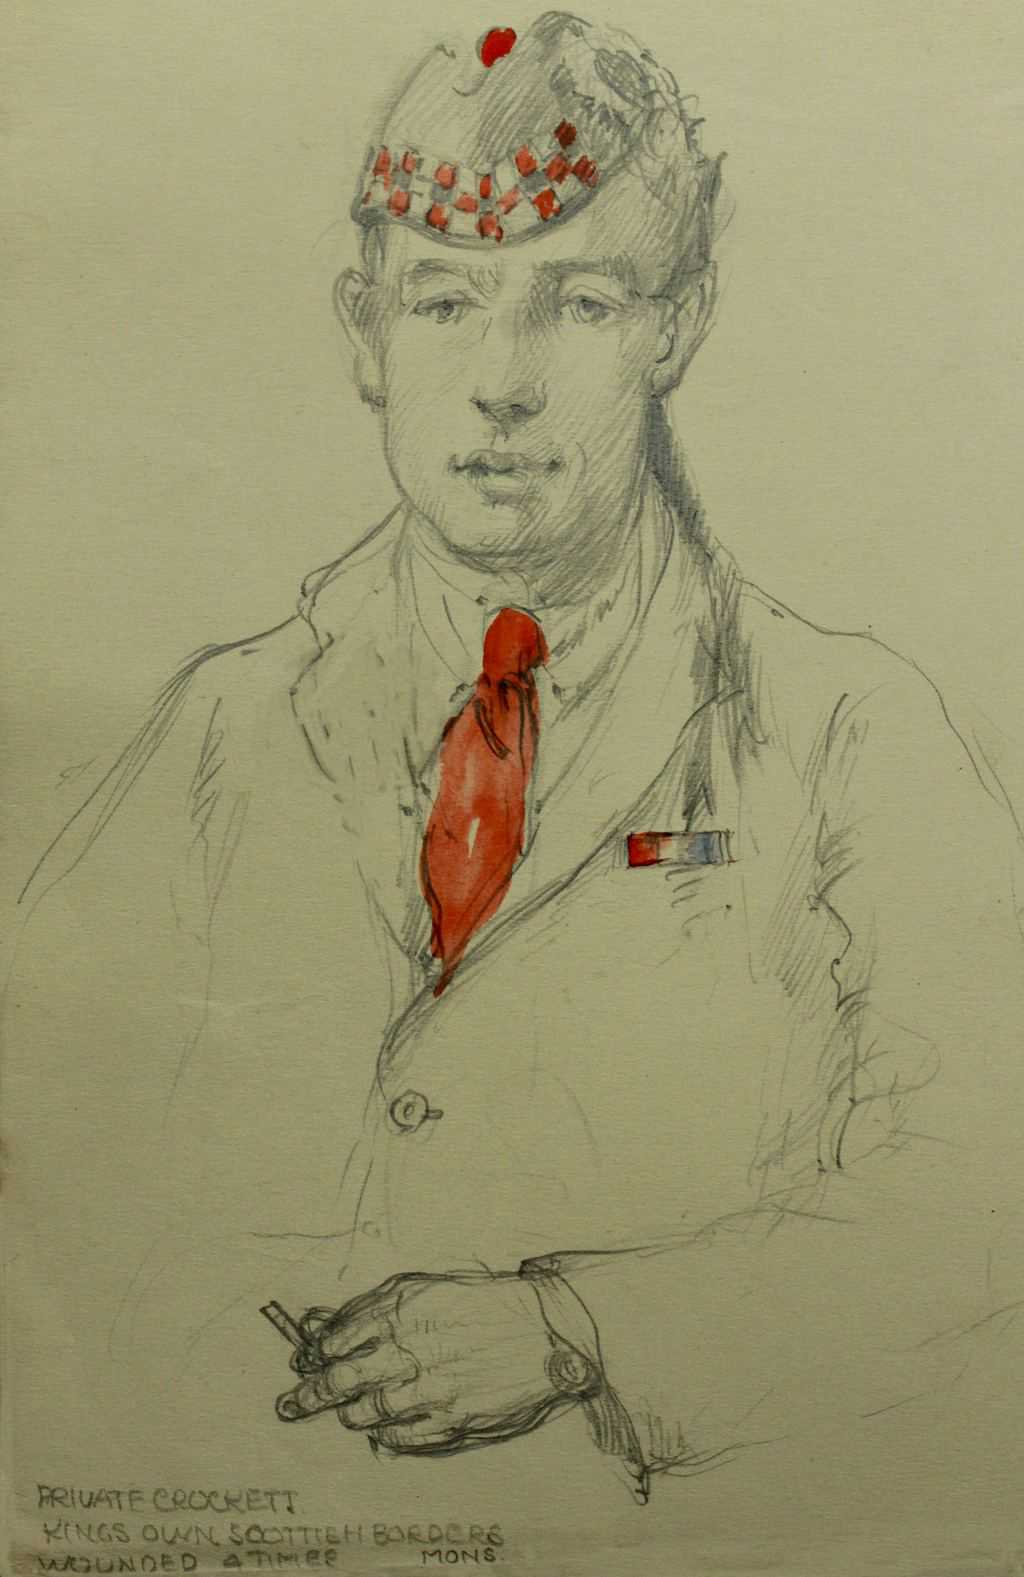 Sketch of Private CROCKETT Kins Own Scottish Borders / Wounded Atimee? Mons